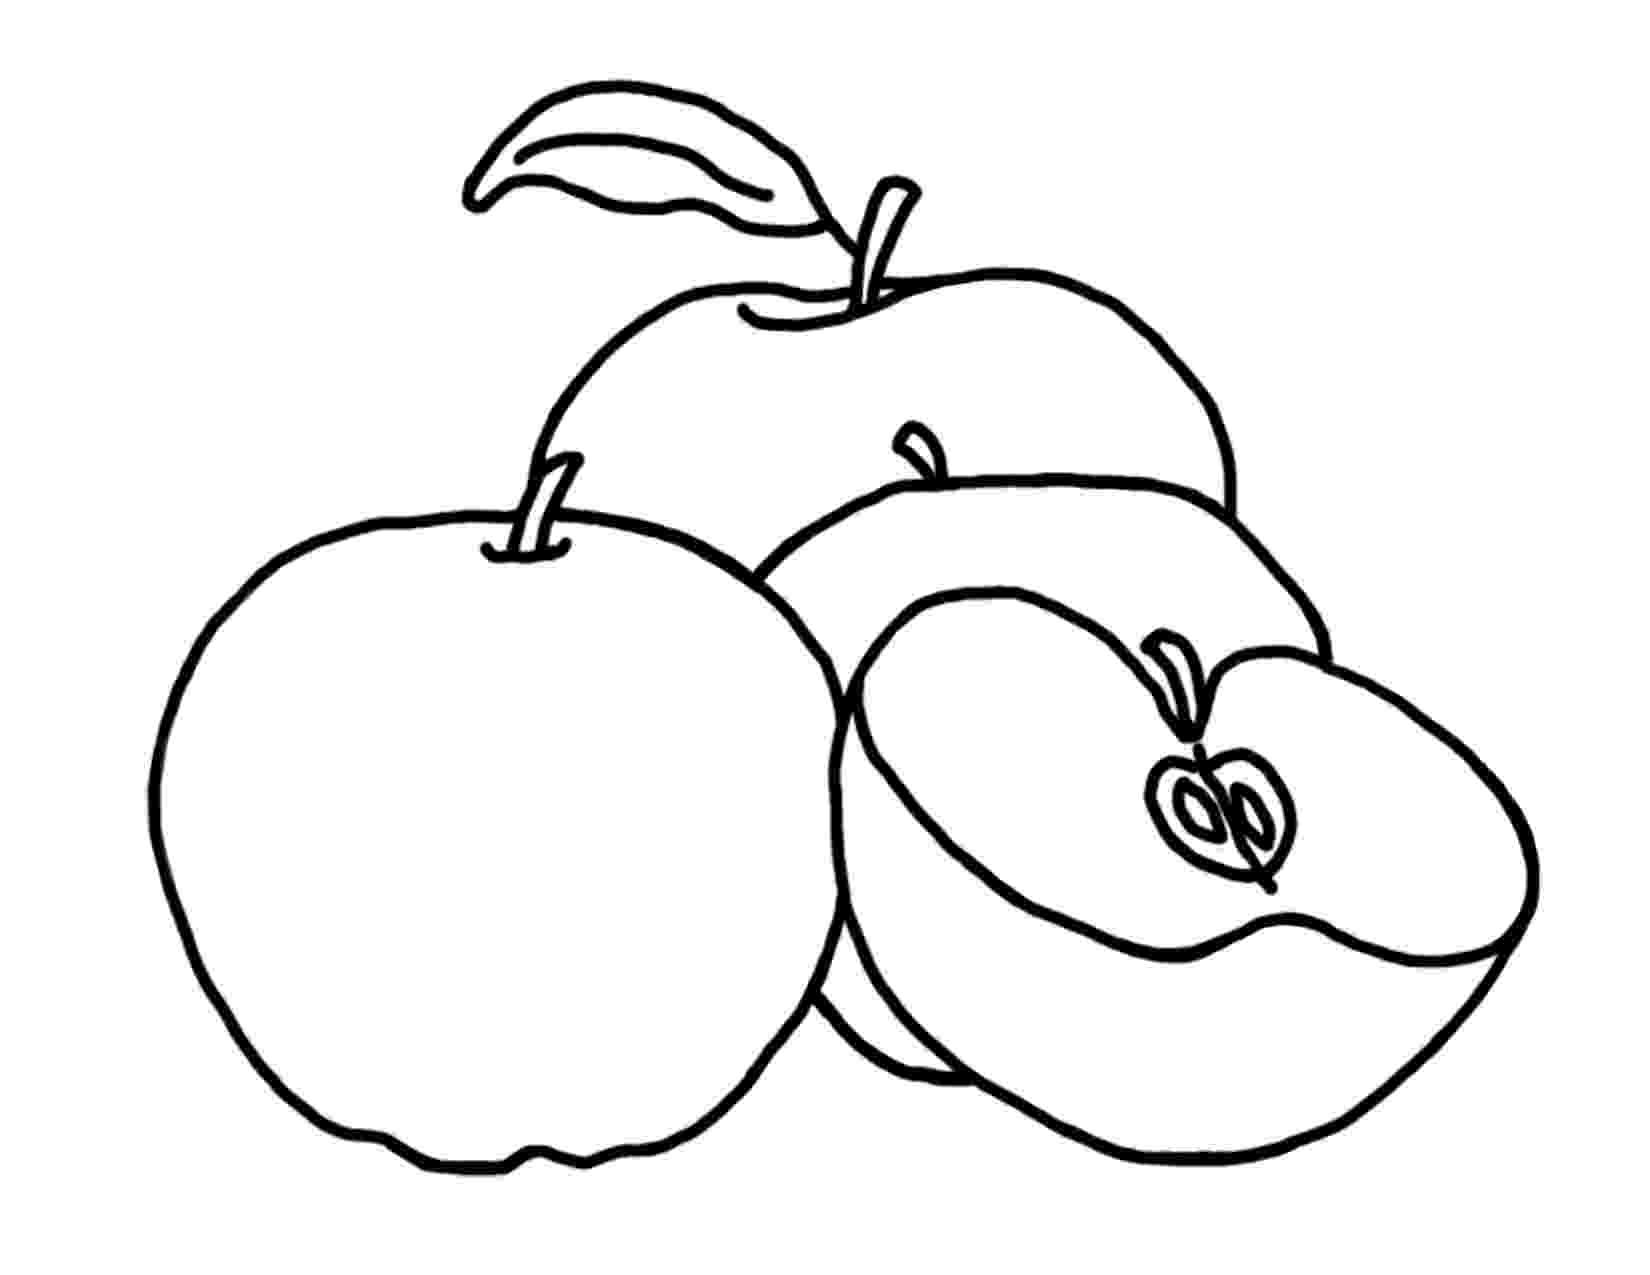 coloring page of an apple apple coloring page free printable coloring pages apple of page coloring an